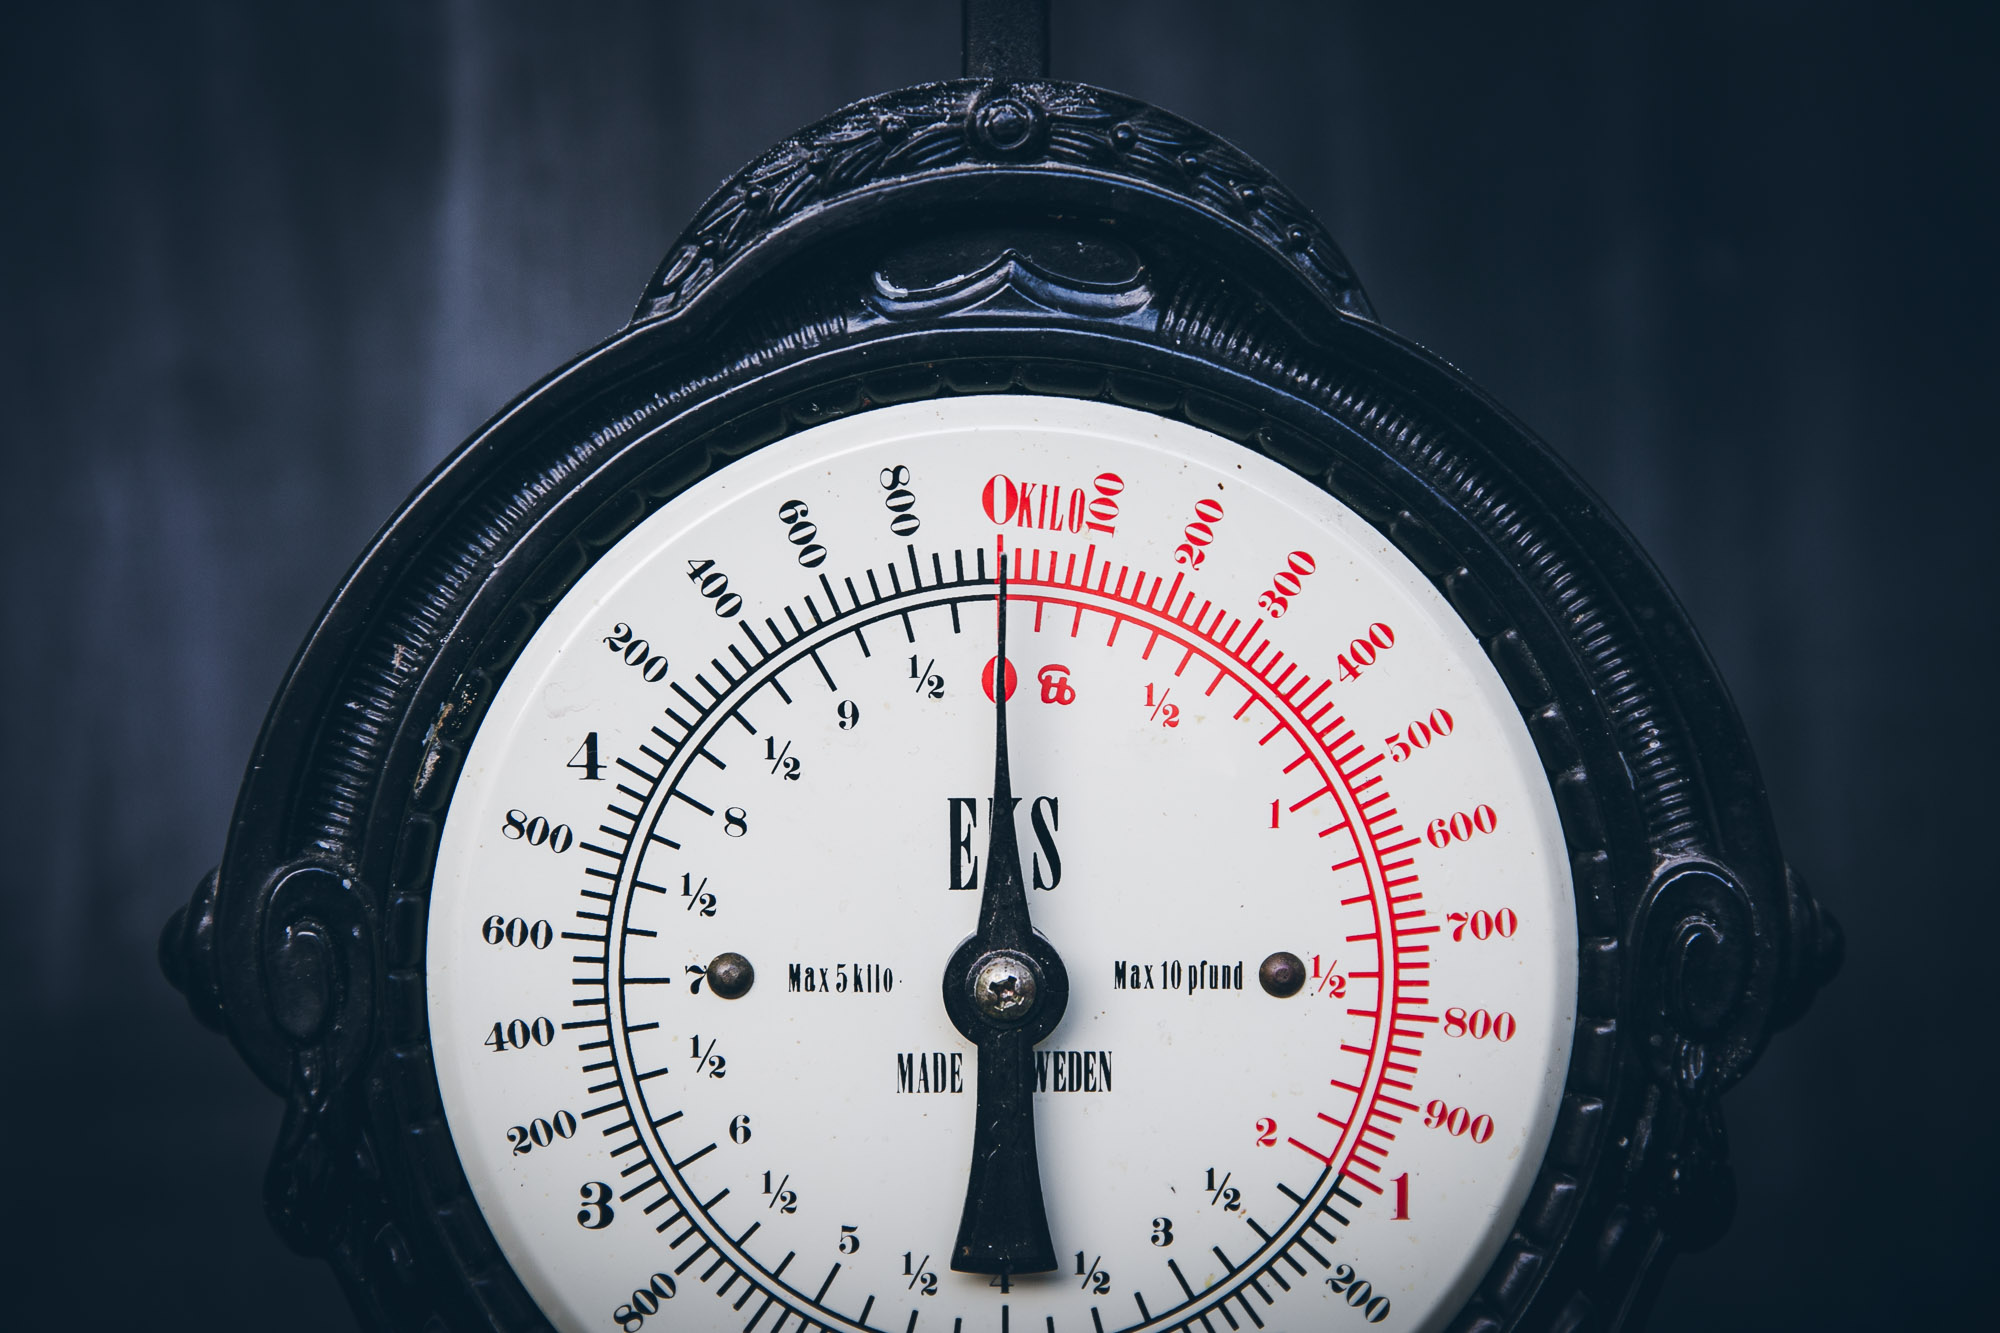 Weight measurement or Volume measurement? Which one is better? Discover in the ultimate Cooking Measurements Guide with Measurement conversion chart on The Adagio Blog